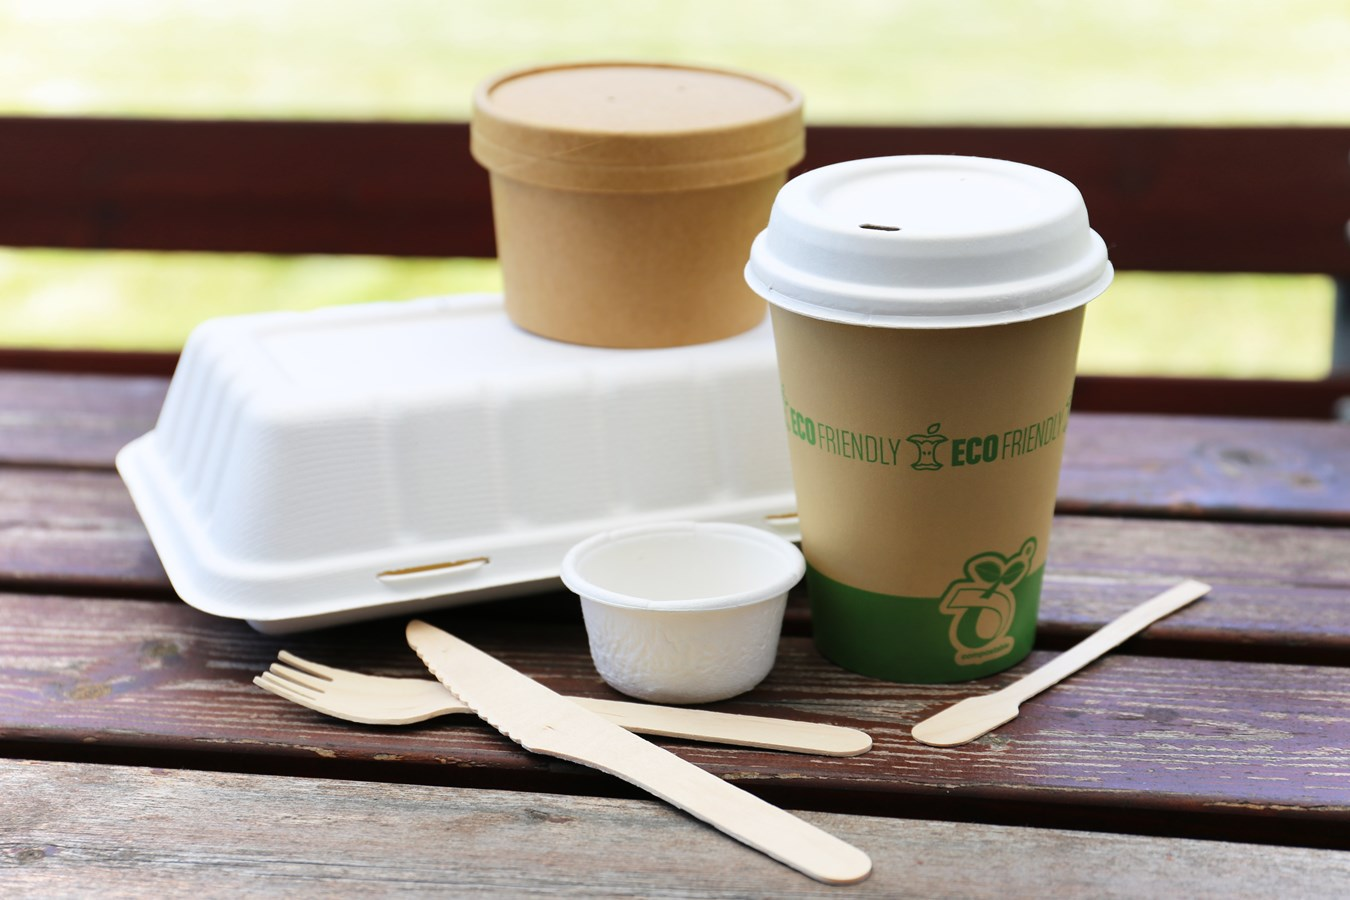 Volvo will replace single-use plastic items with more sustainable alternatives